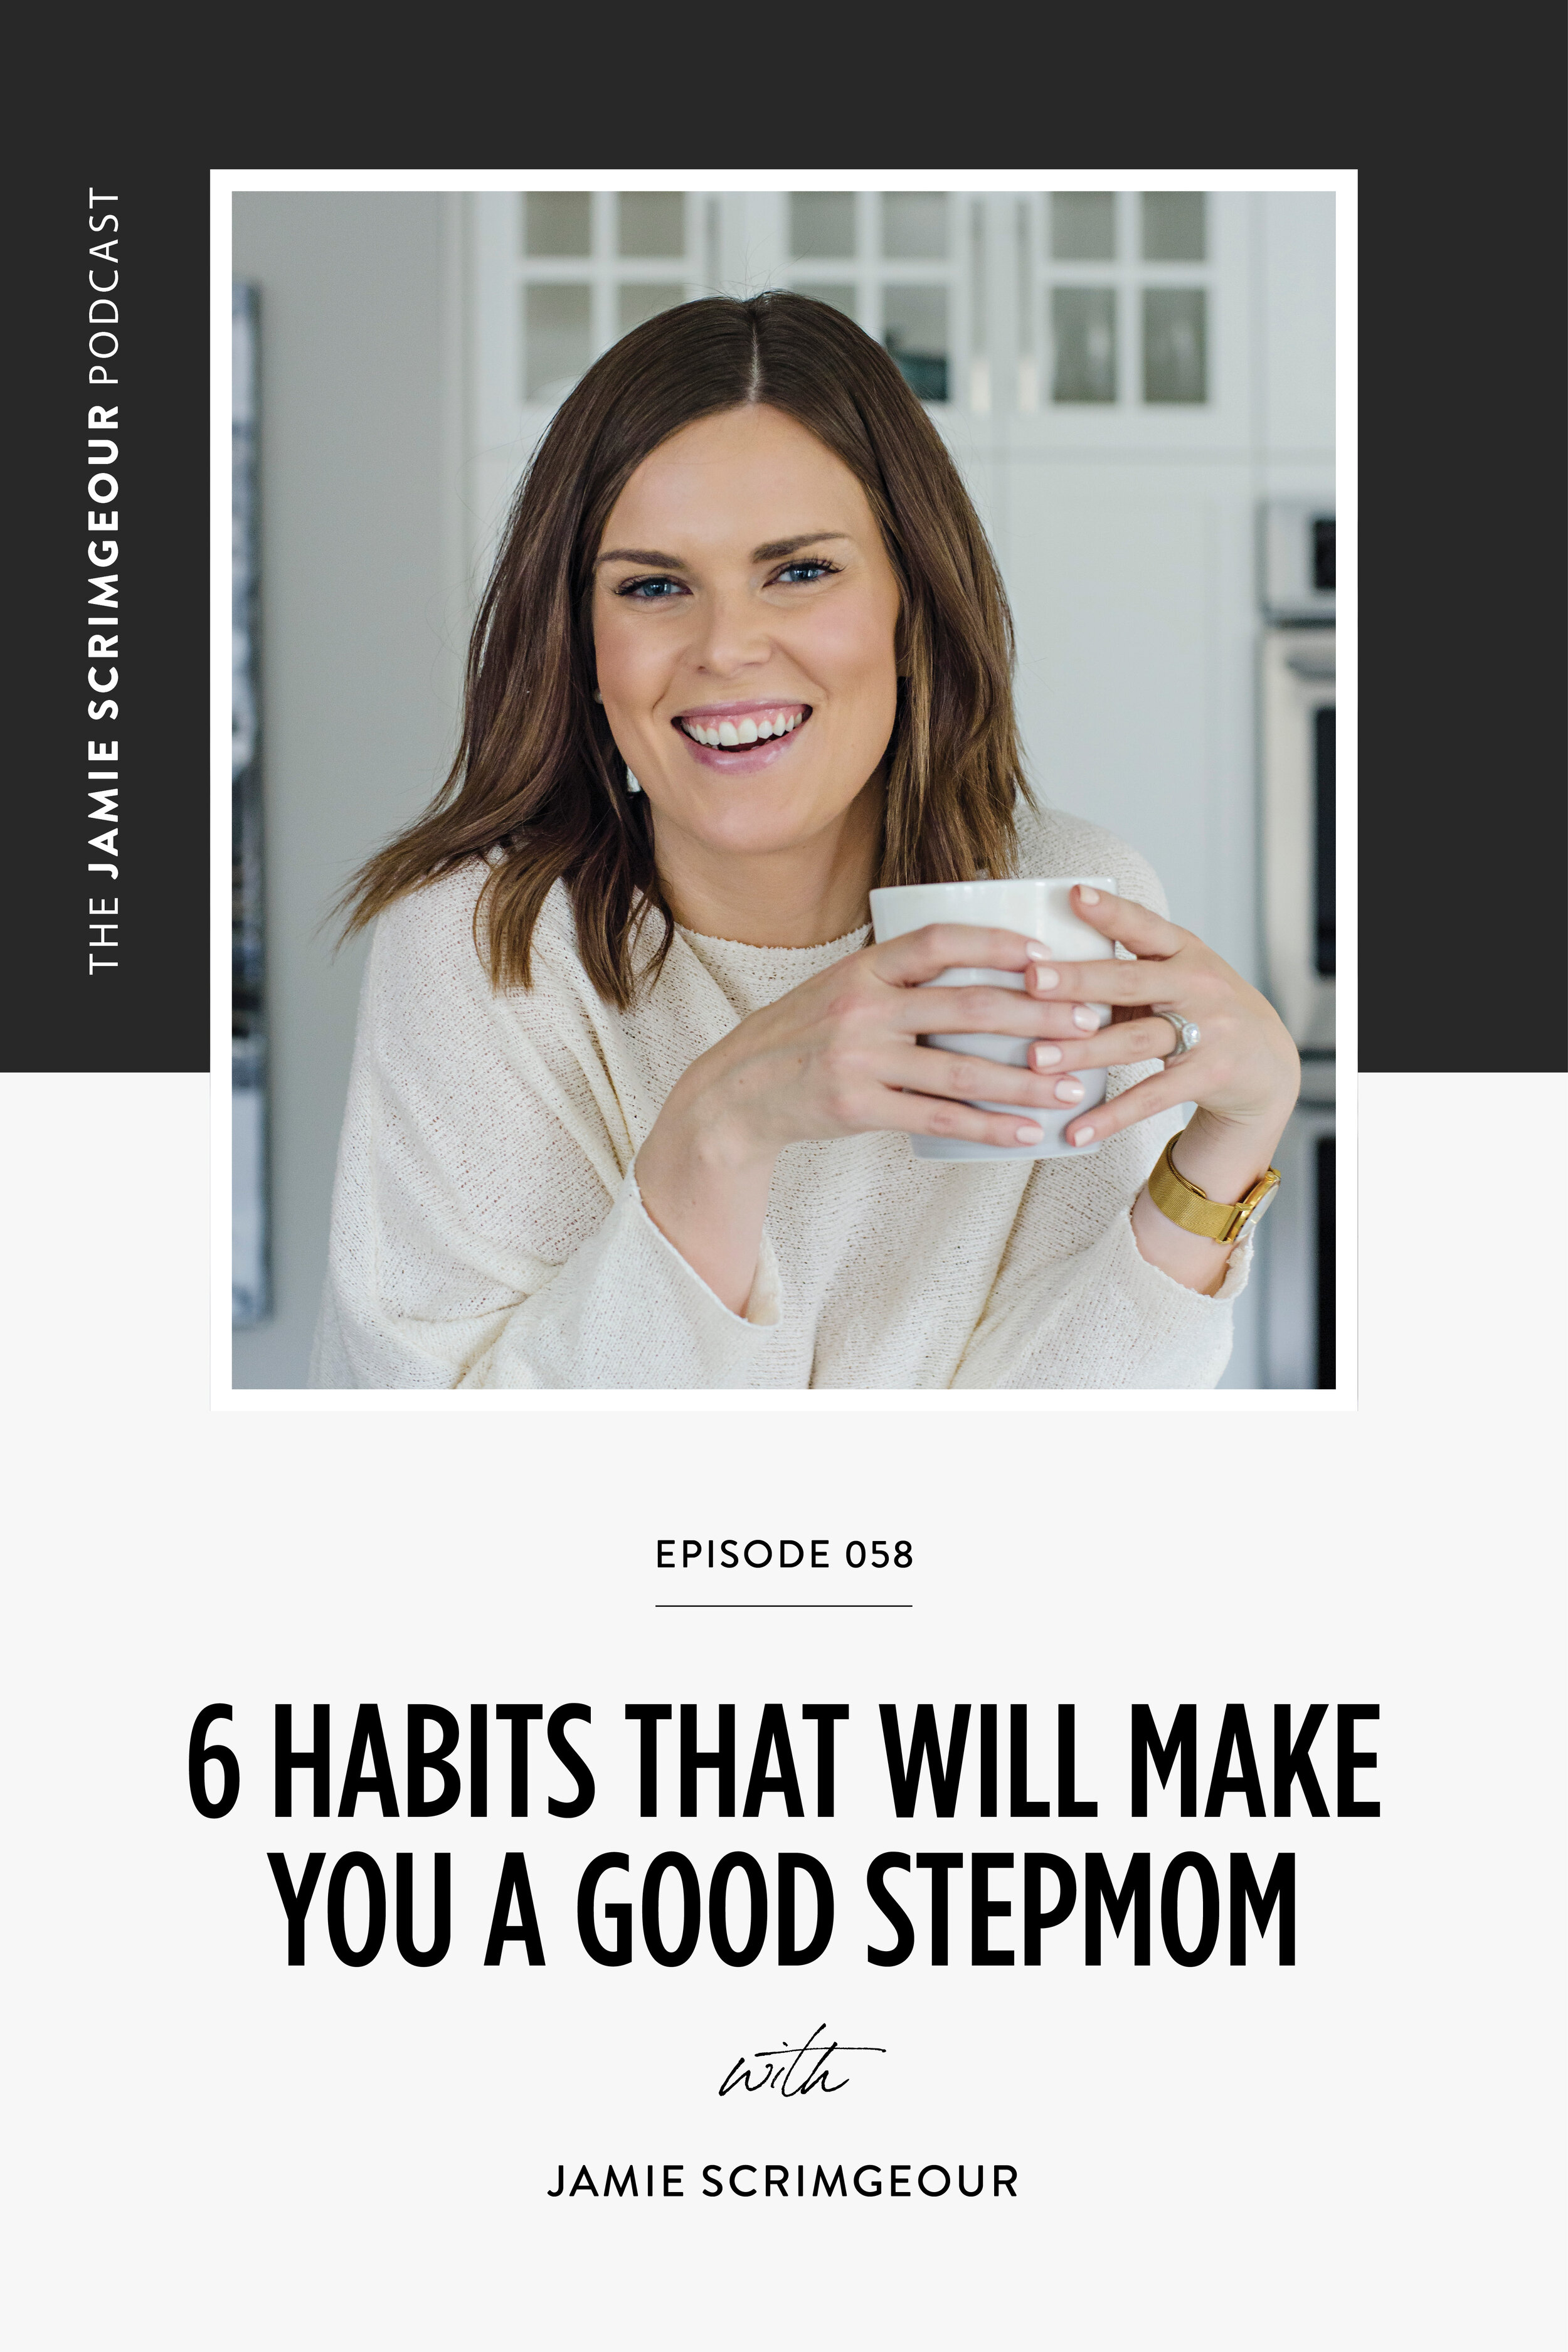 The Jamie Scrimgeour Podcast Ep. 058: 6 Habits That Will Make You A Good Stepmom